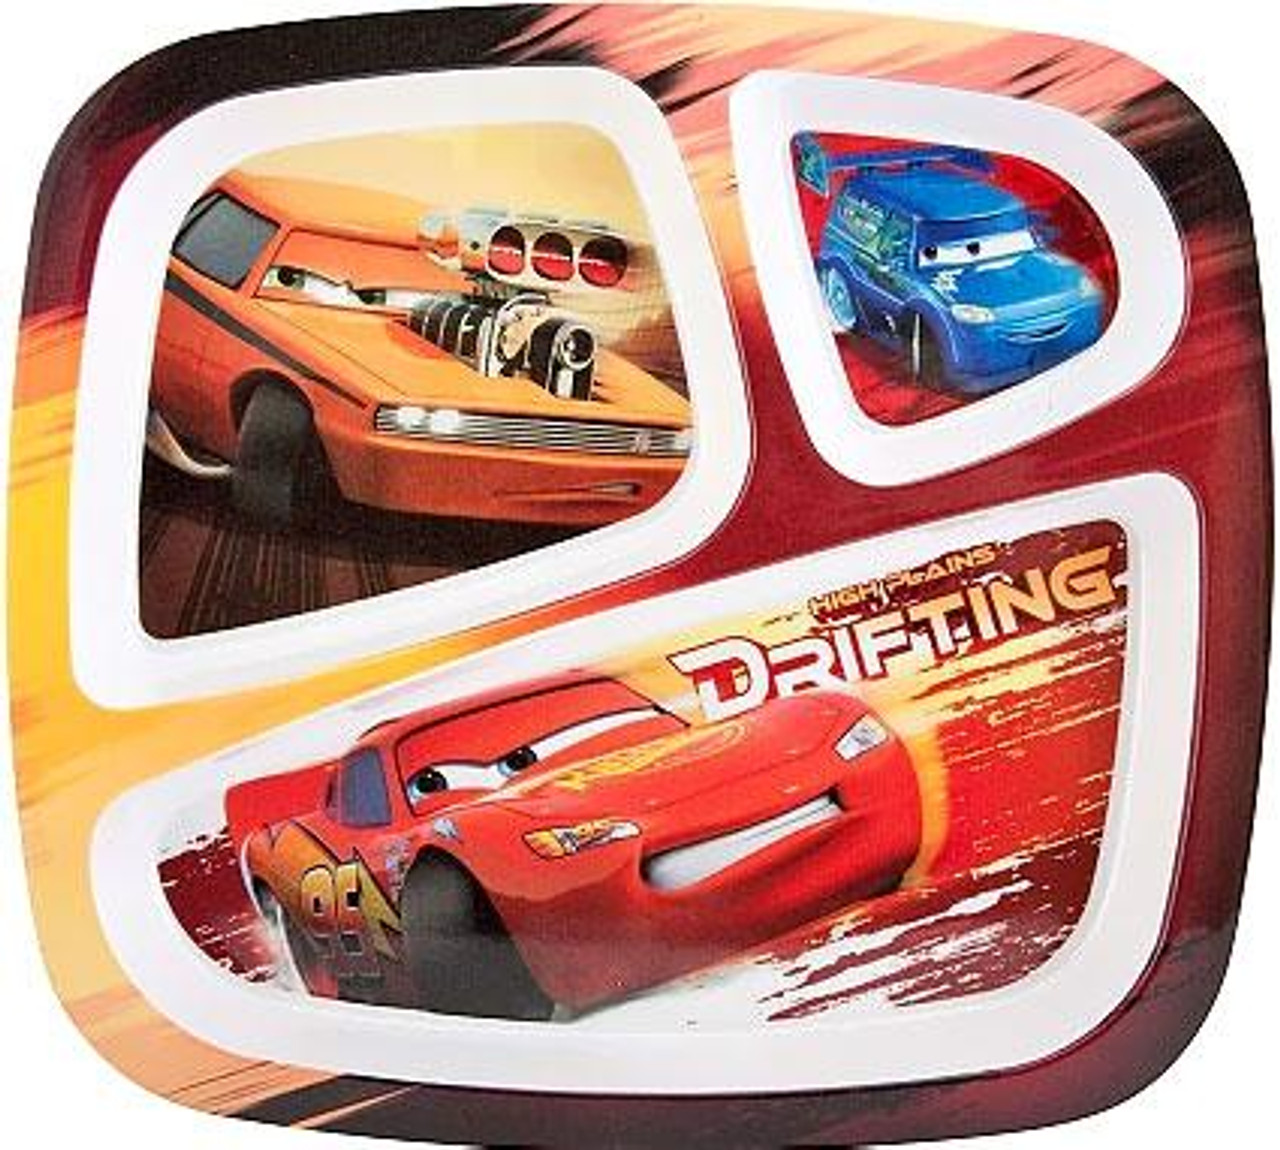 Disney Cars Cars 3-Section Food Tray